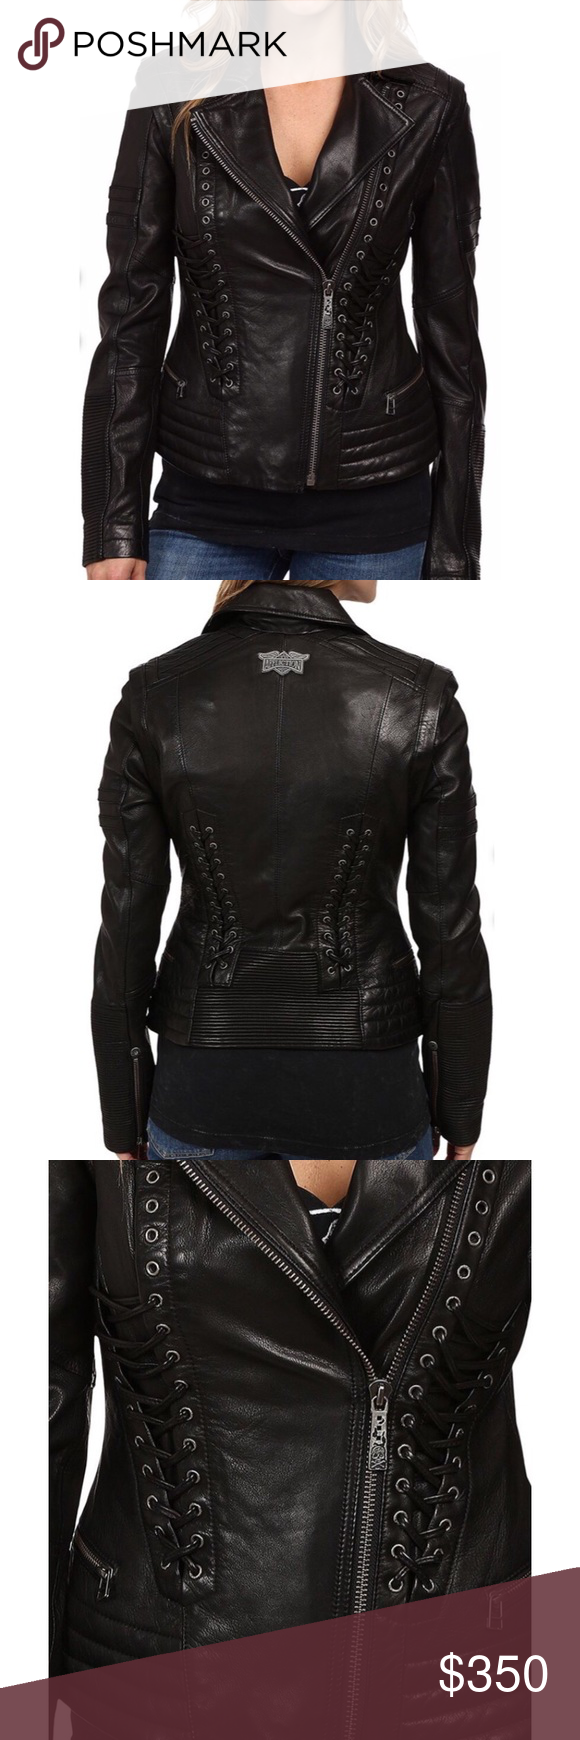 NWT Affliction Leather Moto Lace Up Biker Jacket NWT (With